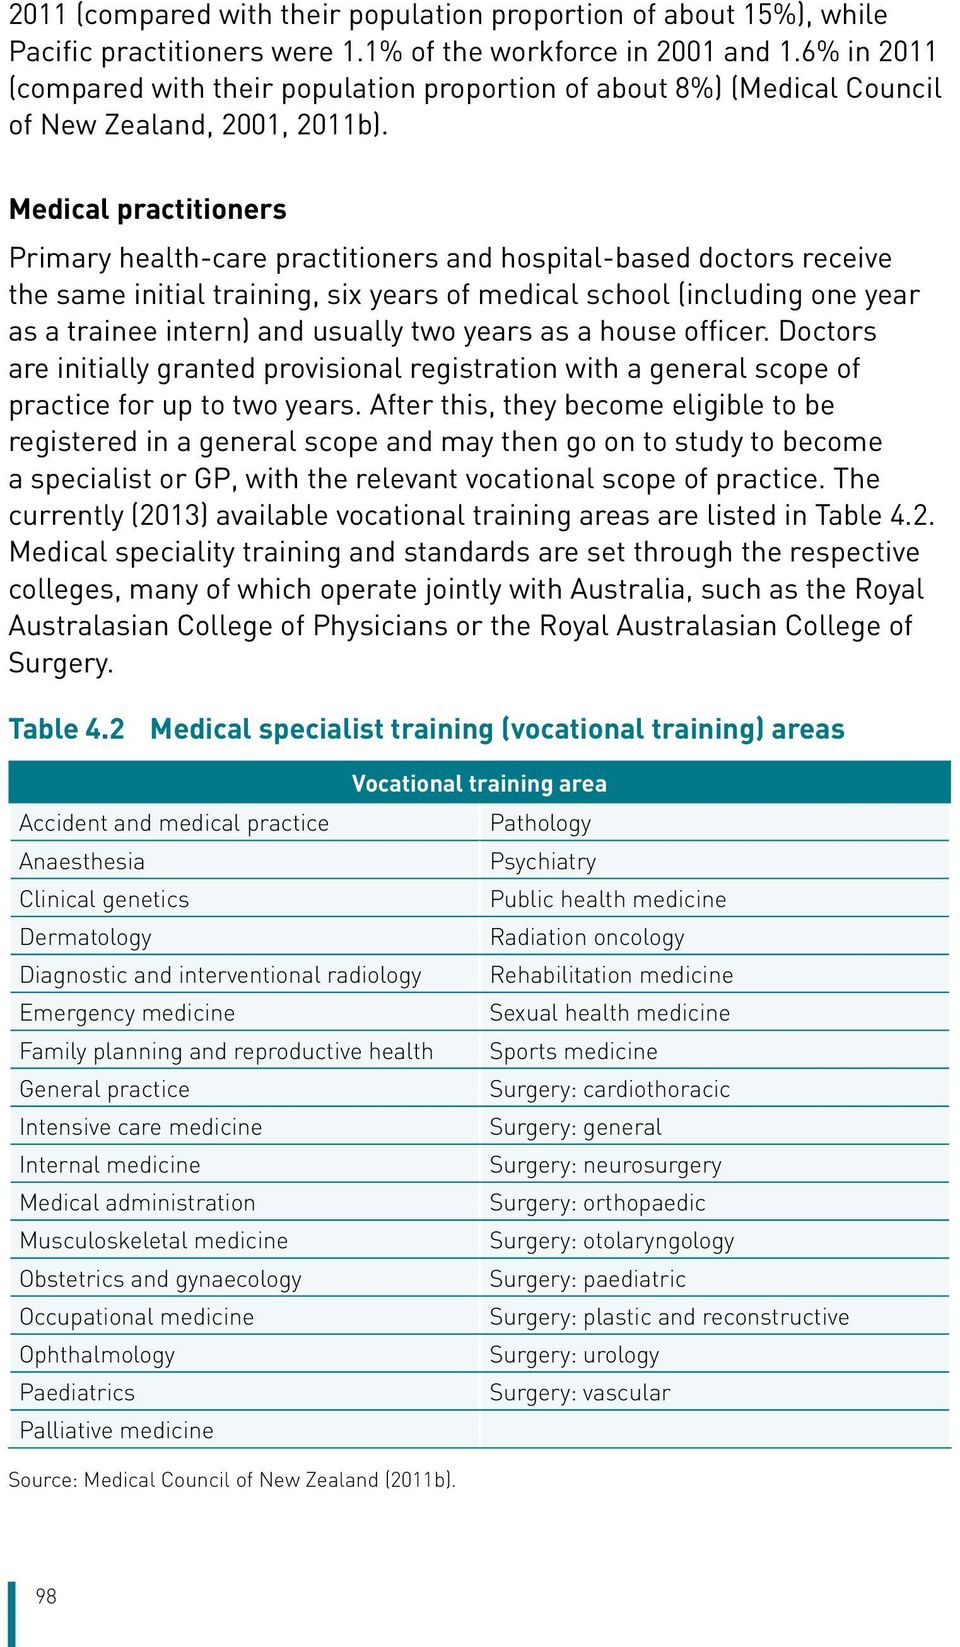 Medical practitioners Primary health-care practitioners and hospital-based doctors receive the same initial training, six years of medical school (including one year as a trainee intern) and usually